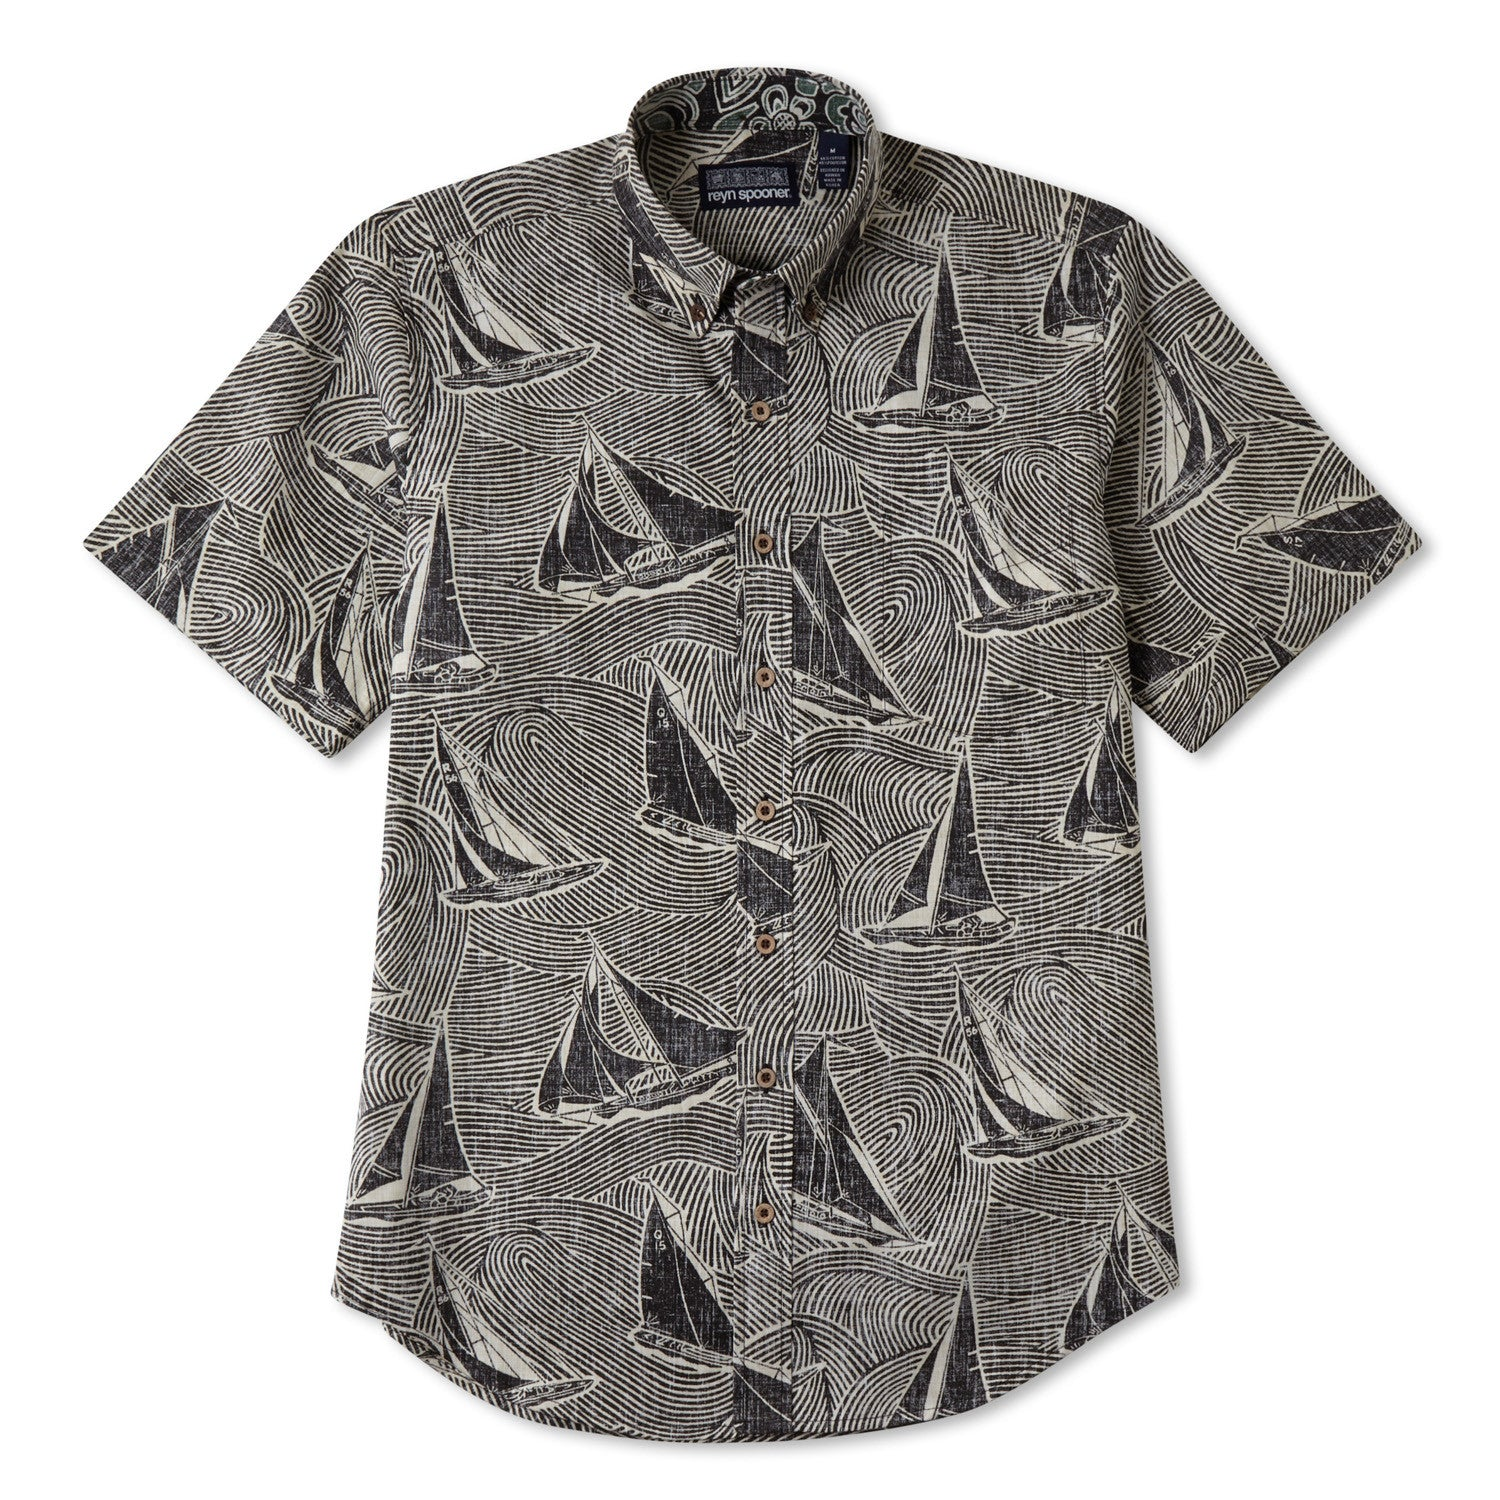 HAWAIIAN SAILS / STANDARD FIT - Zoomed